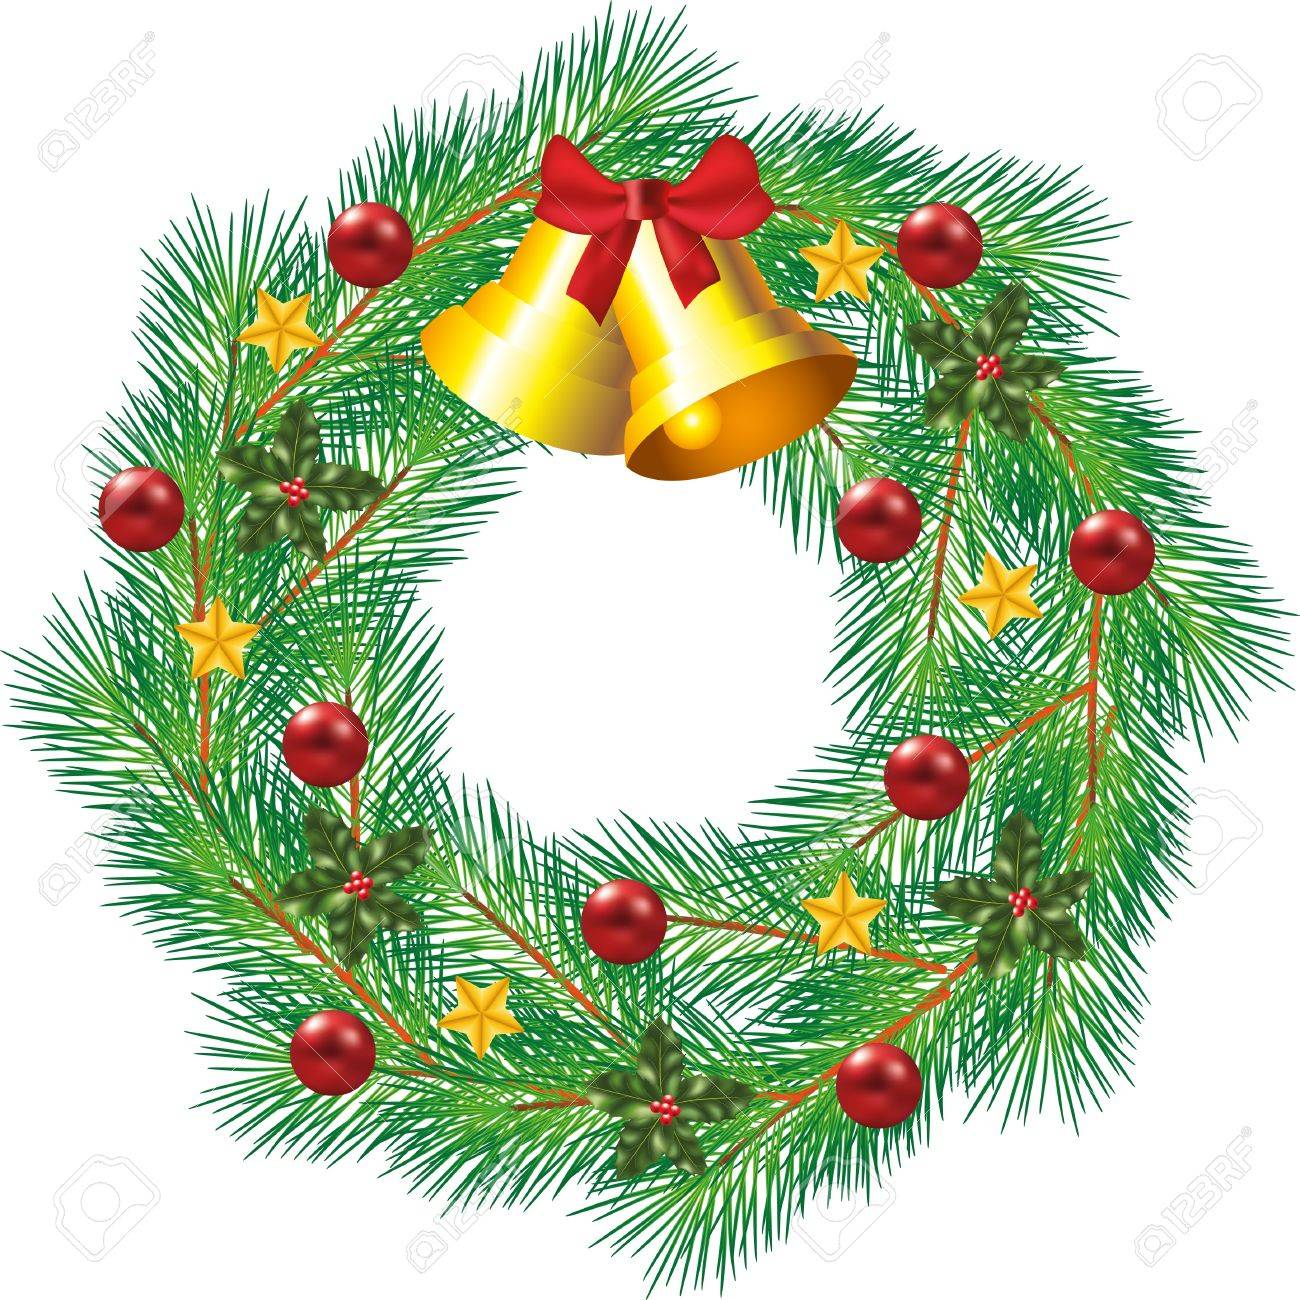 christmas decorated wreath with jingle bells and balls photo-realistic illustration Stock Vector - 16578243